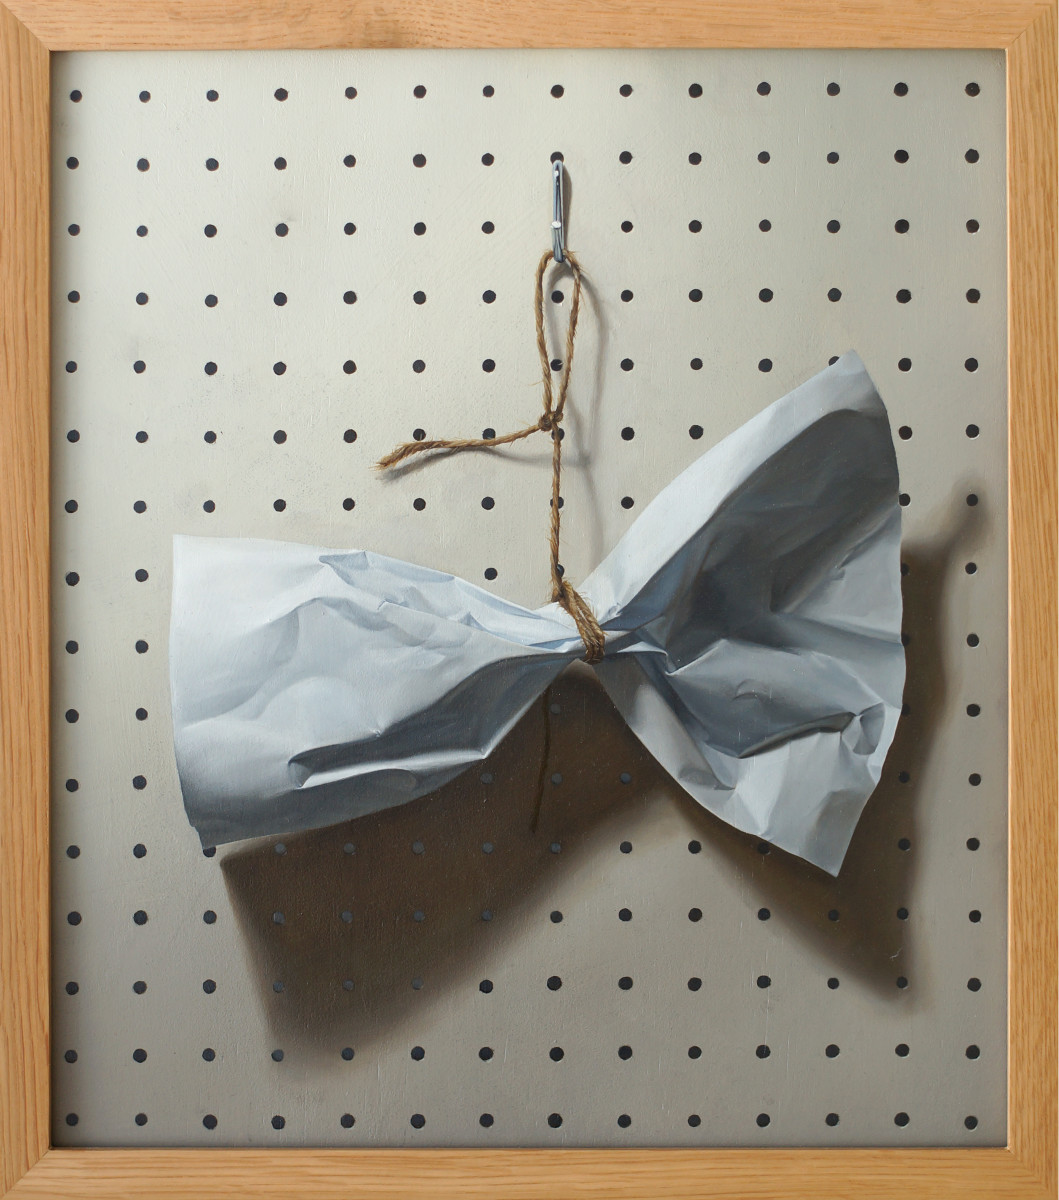 Bowtie by Daevid Anderson